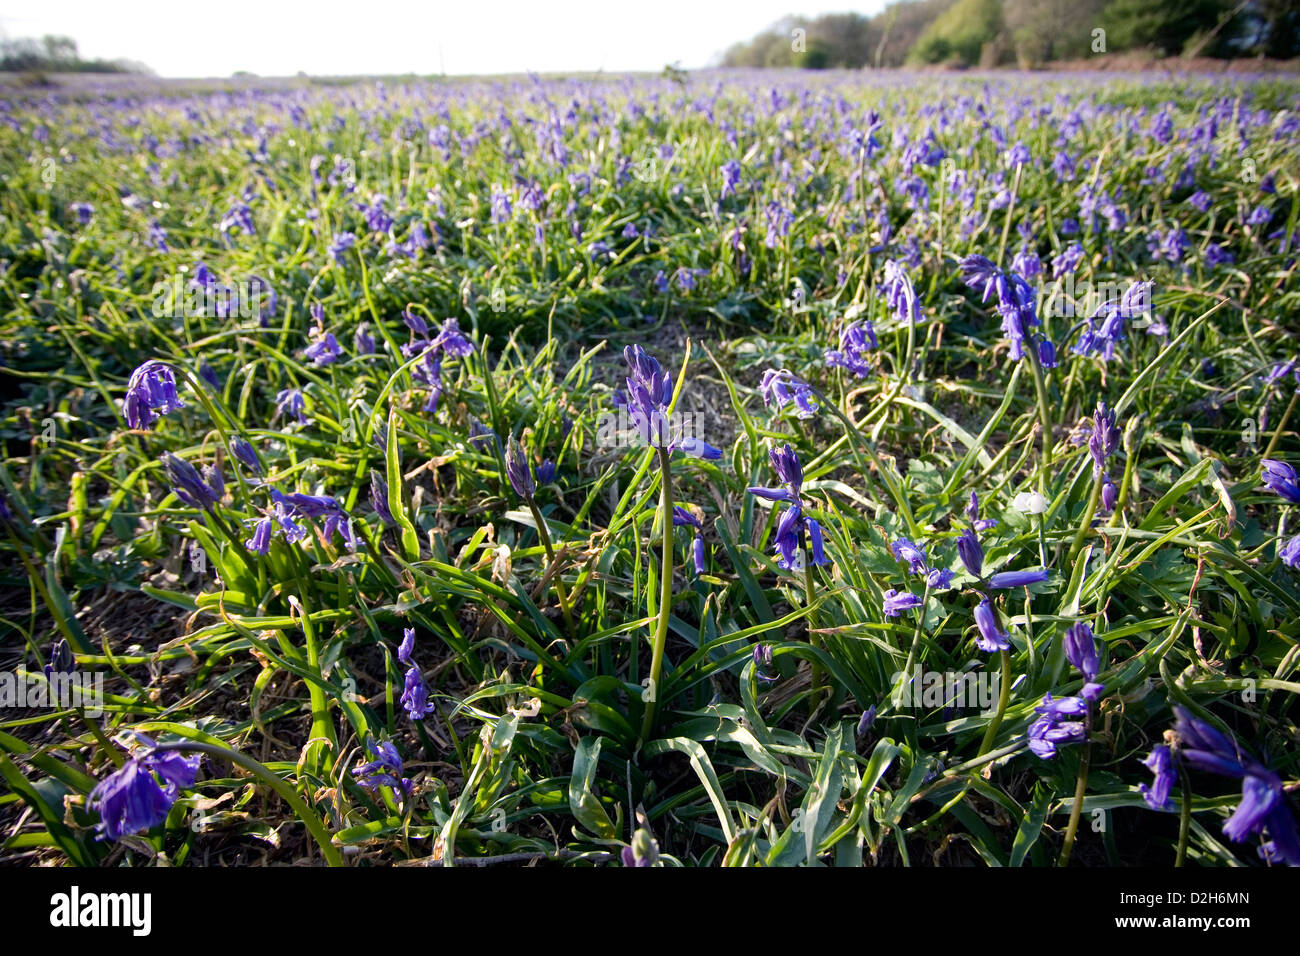 An open field of Bluebell flowers in Spring time in the South East of England. - Stock Image